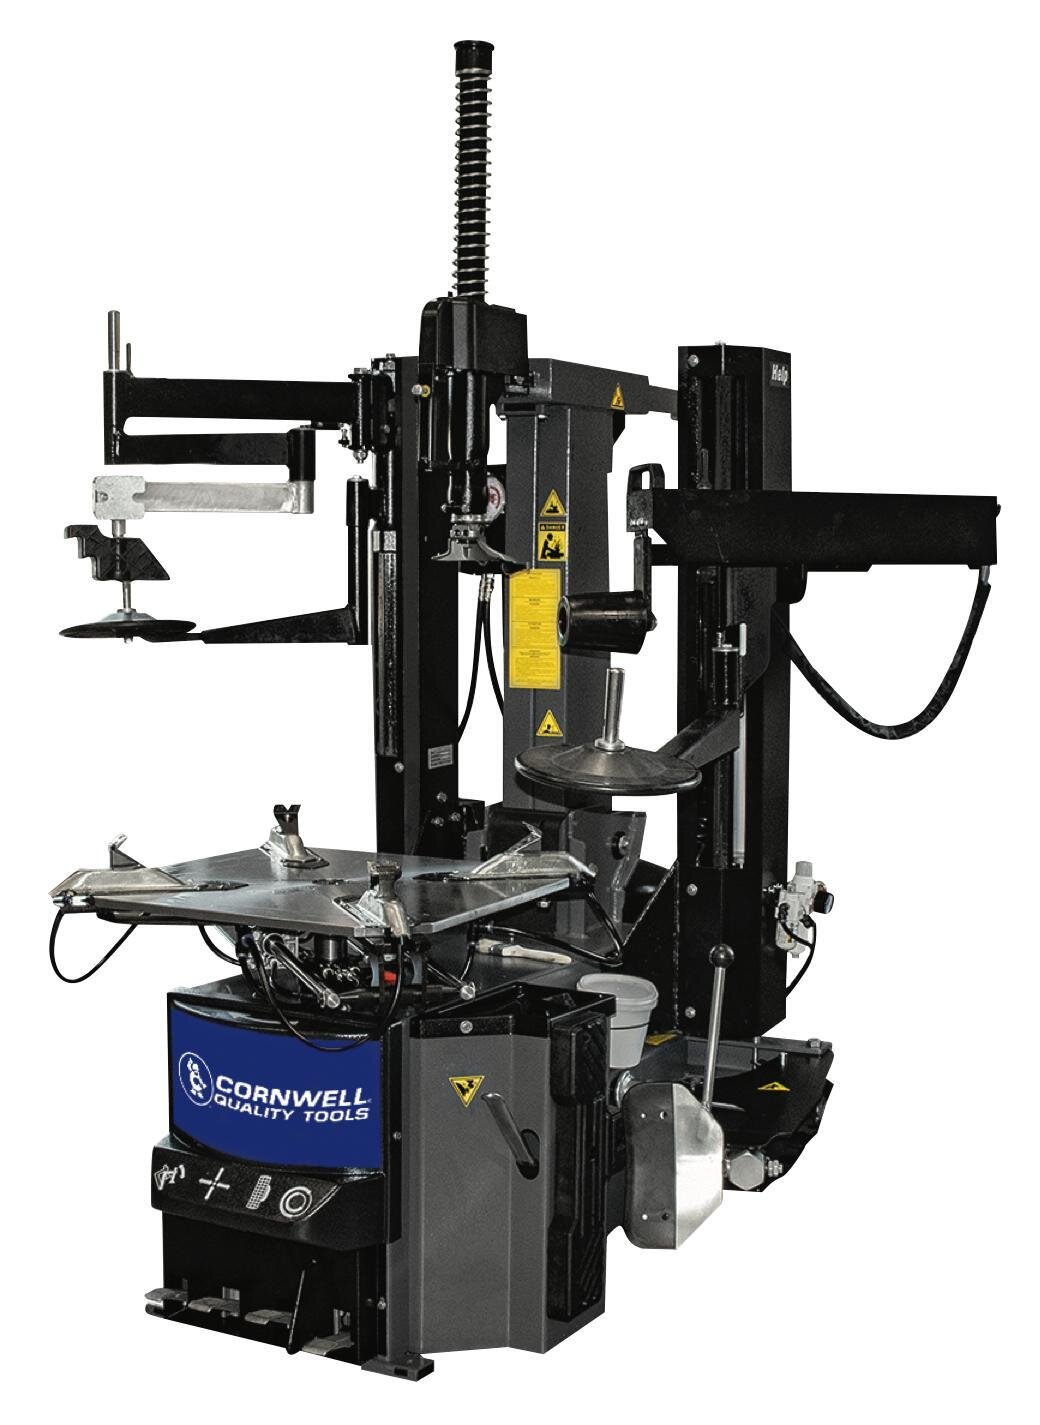 CMBCSM645HPA - Performance Tilt Back Tire Changer with HPA Bead Press